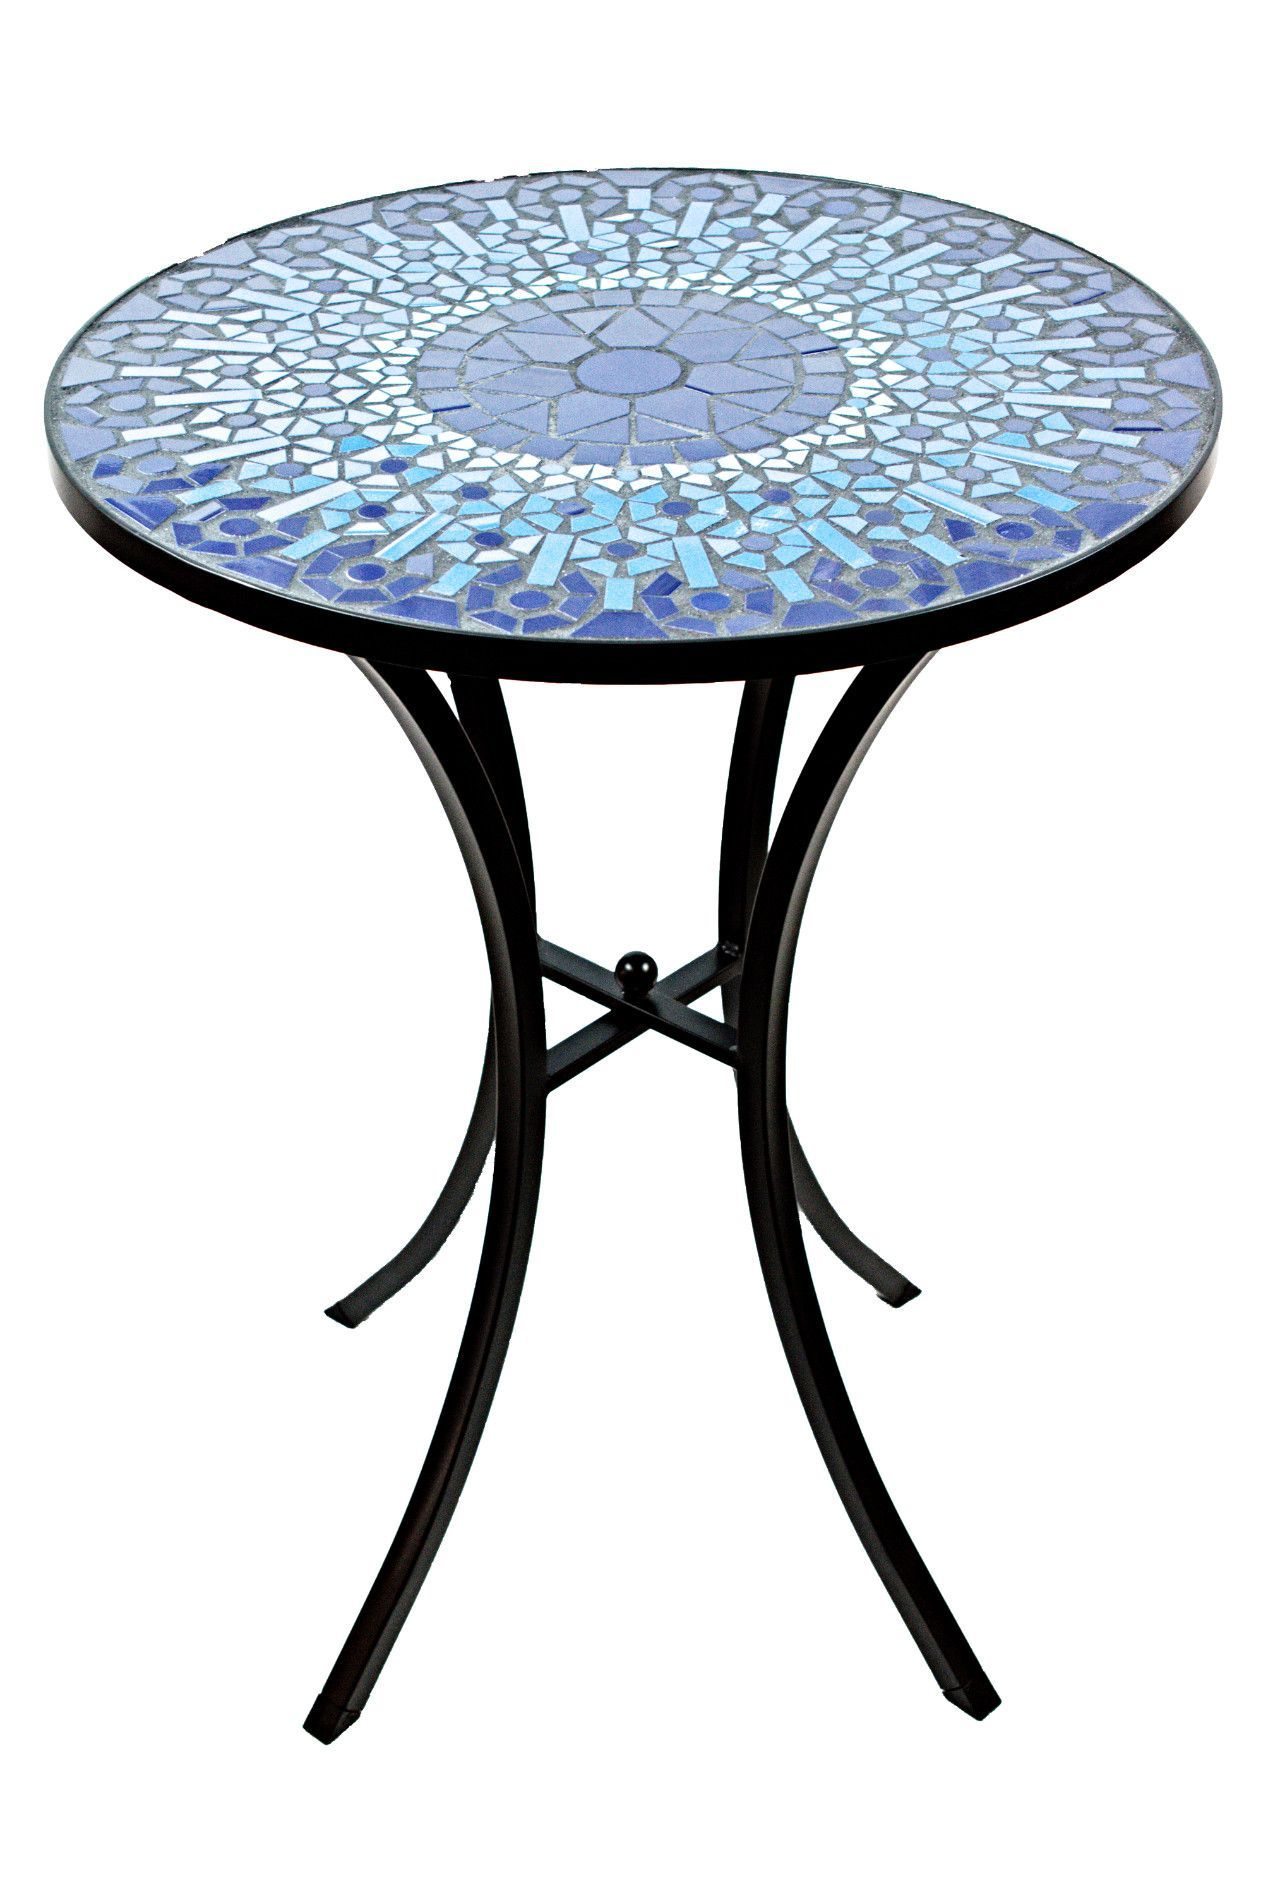 moroccan top mexican diy chantel small side table tables wonderful astonishing mosaic tile ceramic outdoor blue patio accent full size rose gold furniture bunnings set coastal